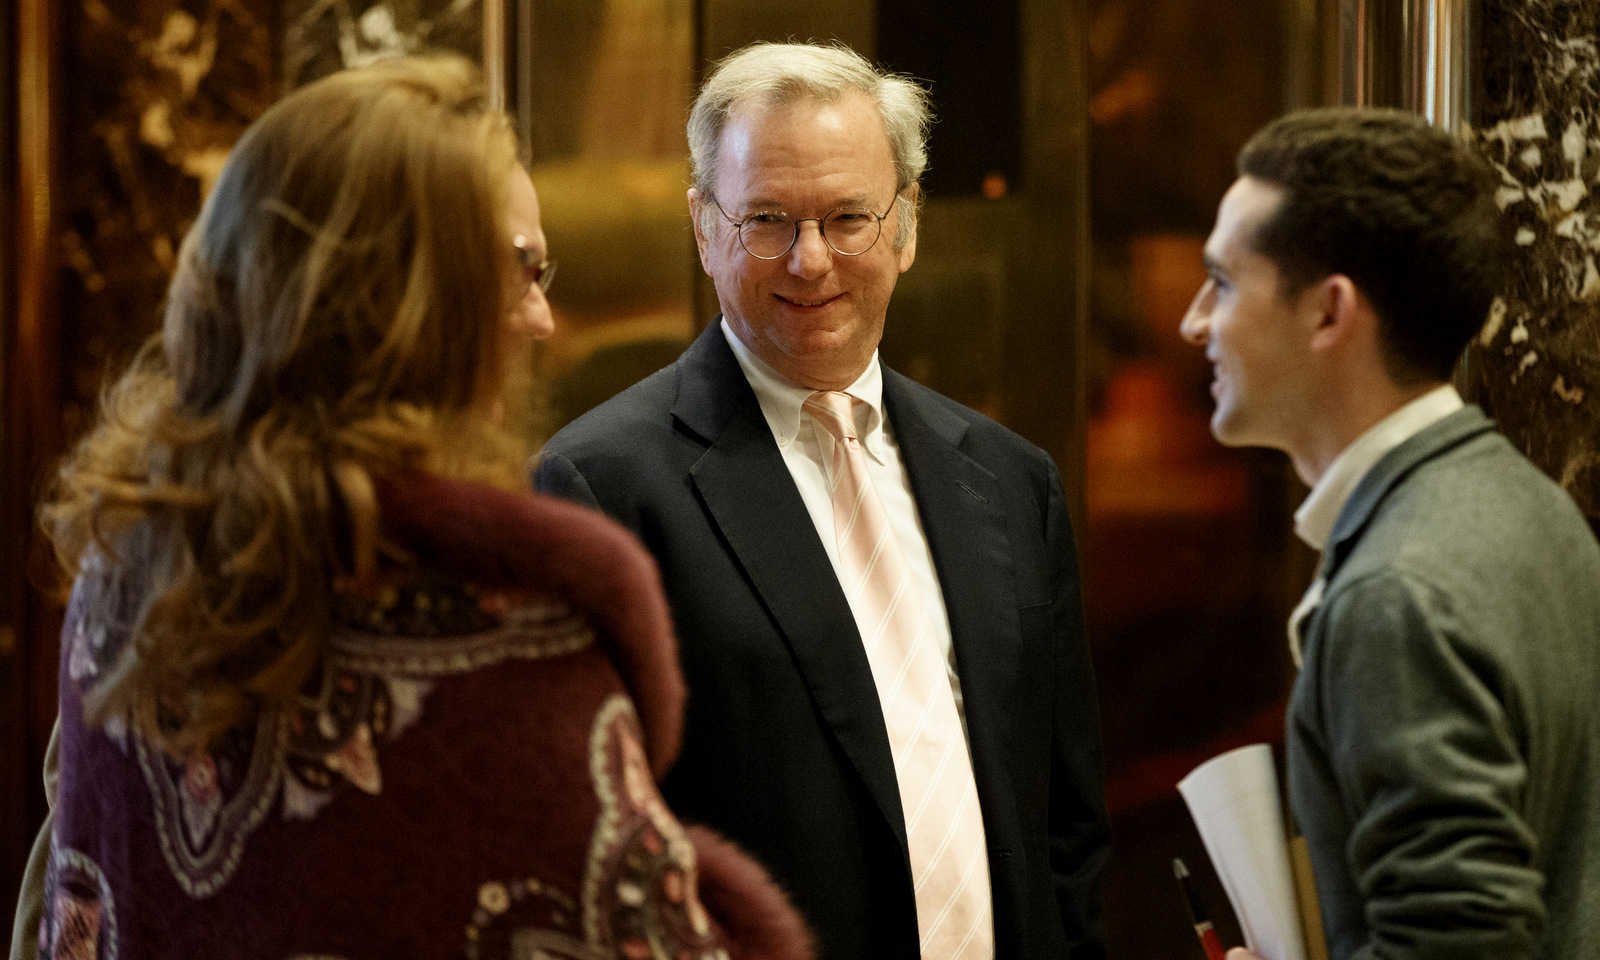 Eric Schmidt, executive chairman of Alphabet, Inc., stands in the lobby of Trump Tower in New York, Jan. 12, 2017. (AP/Evan Vucci)